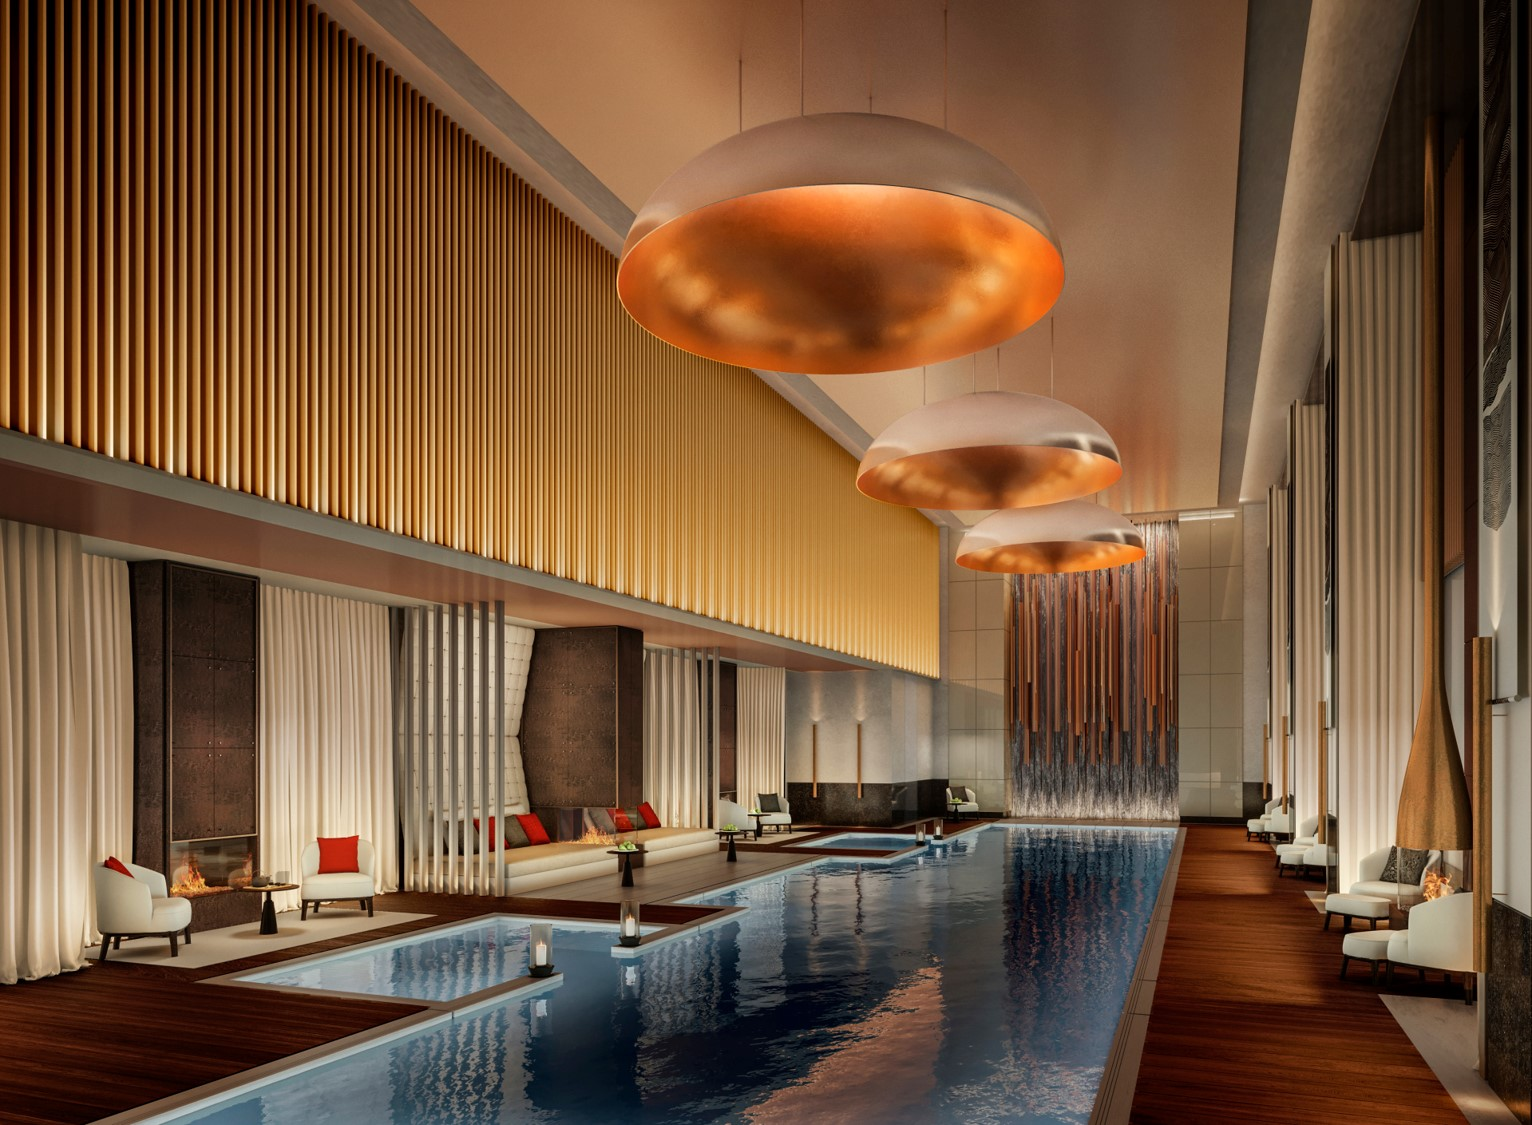 News bloomberg aman resorts is bringing 50 million for 24 hour salon nyc